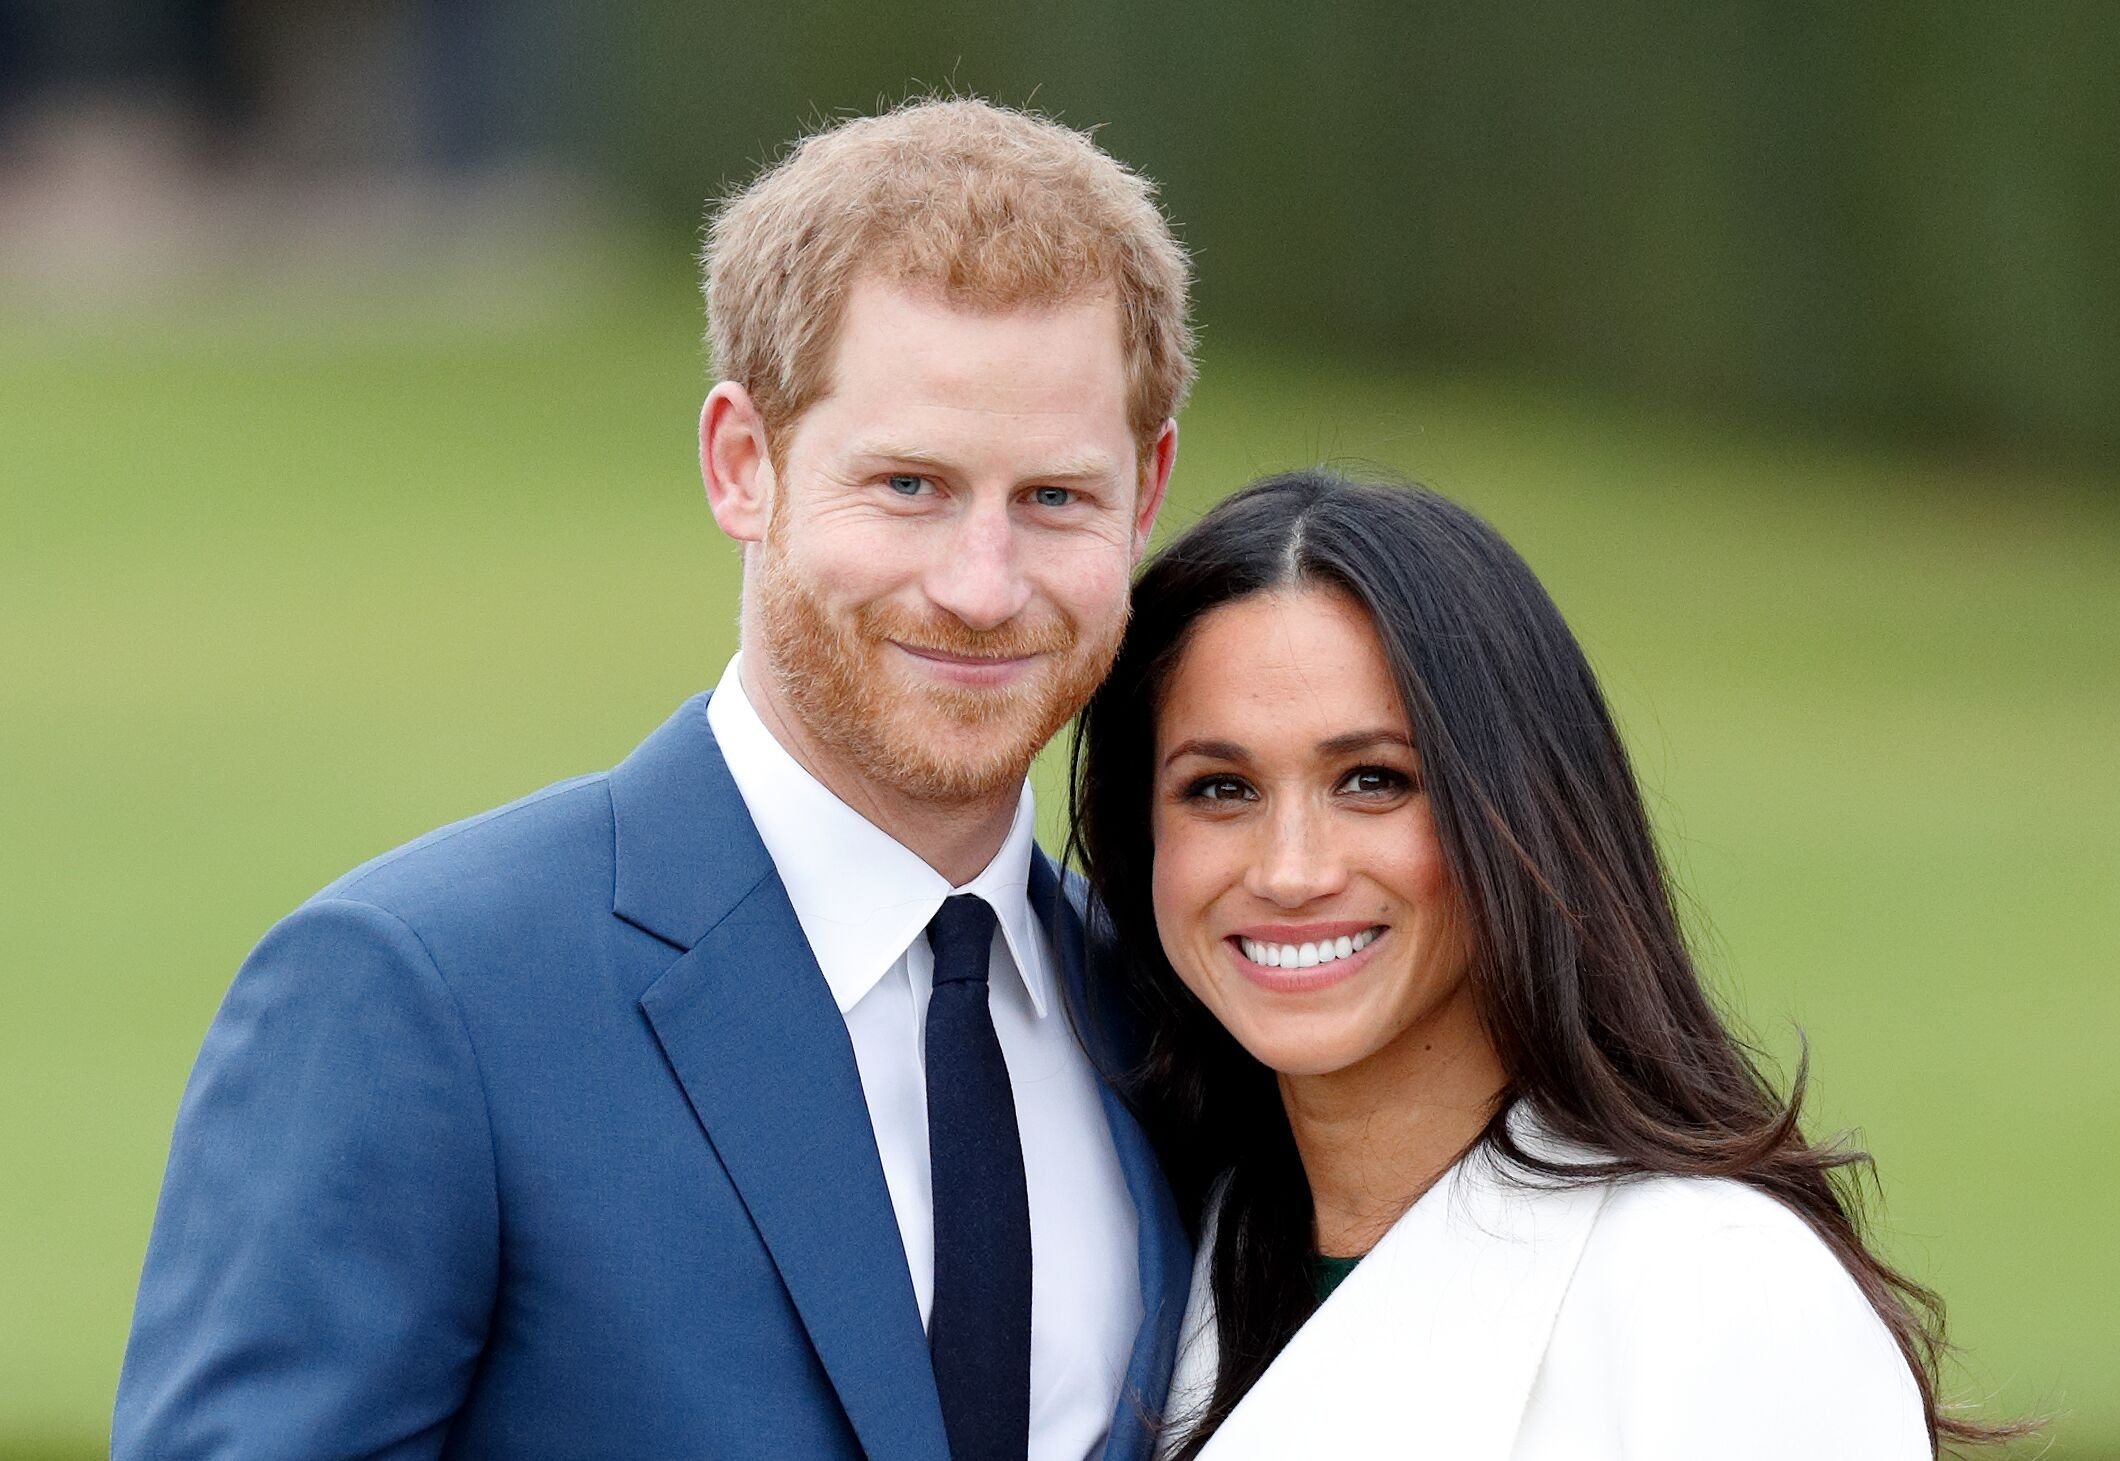 Prince Harry and Meghan Markle attend an official photocall to announce their engagement at The Sunken Gardens, Kensington Palace on November 27, 2017 in London, England. | Source: Getty Images